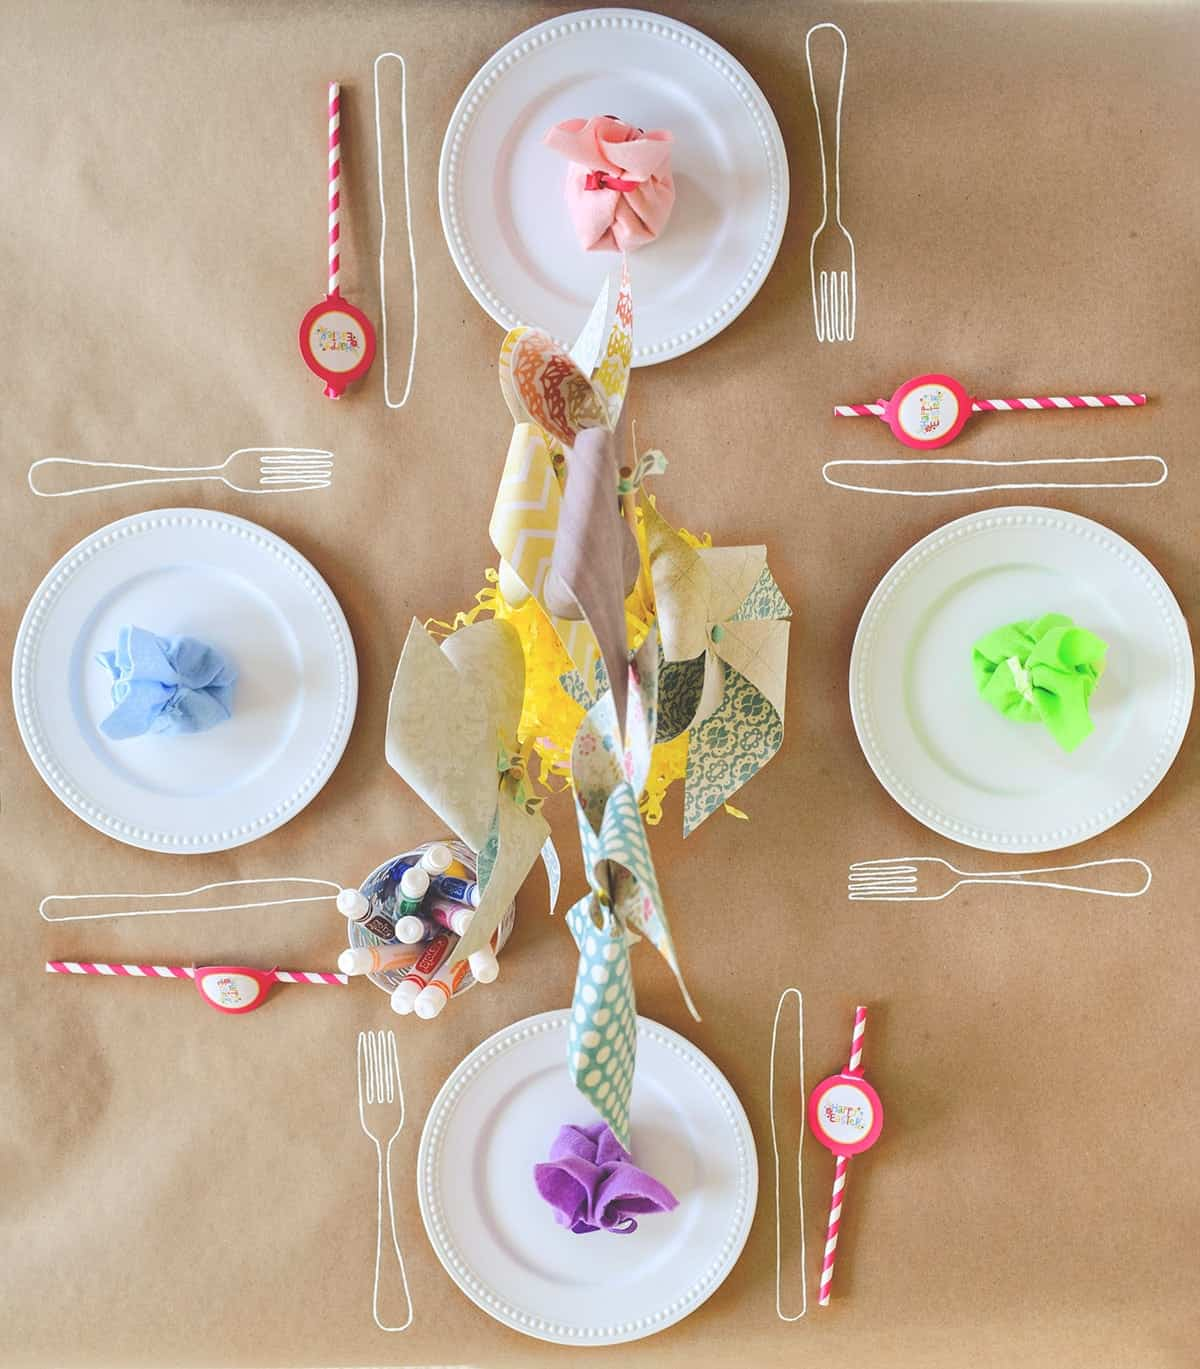 Brown craft paper covering for kid's table with white plates, colorful napkins, pinwheel centerpiece, and markers for drawing on table.